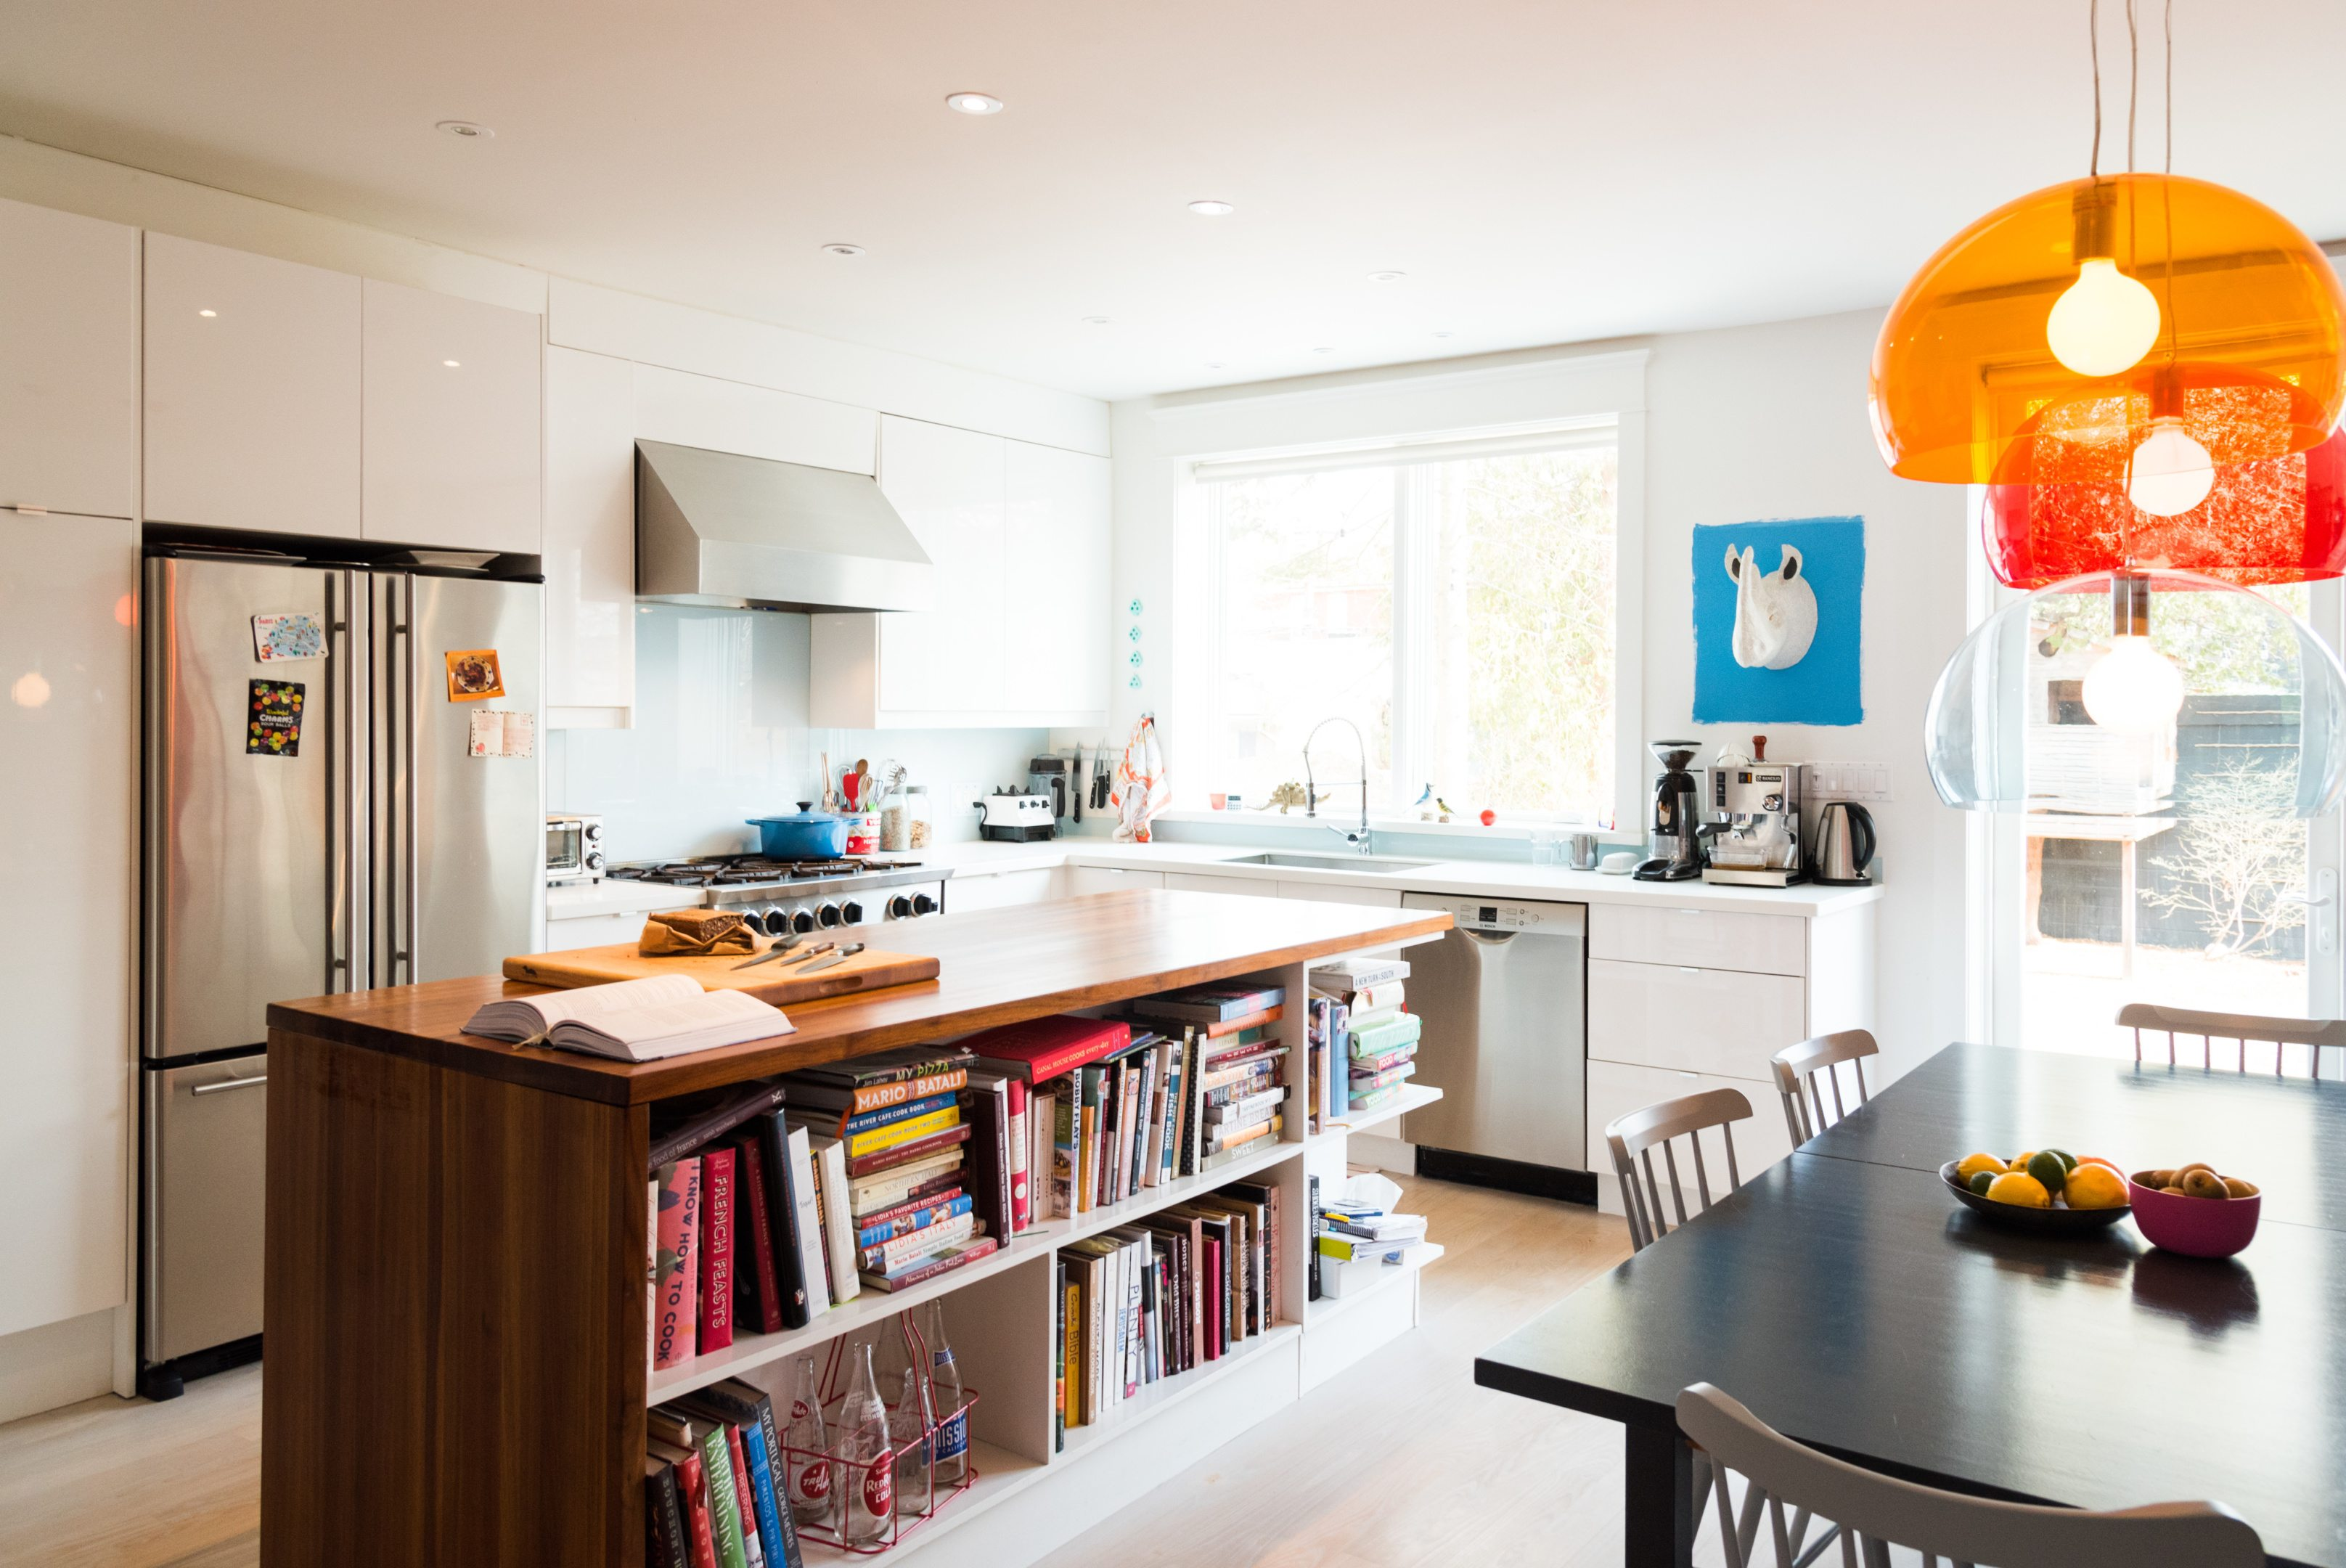 toronto-kitchen-diaries-home-chris-nuttall-smith-top-chef-canada-room